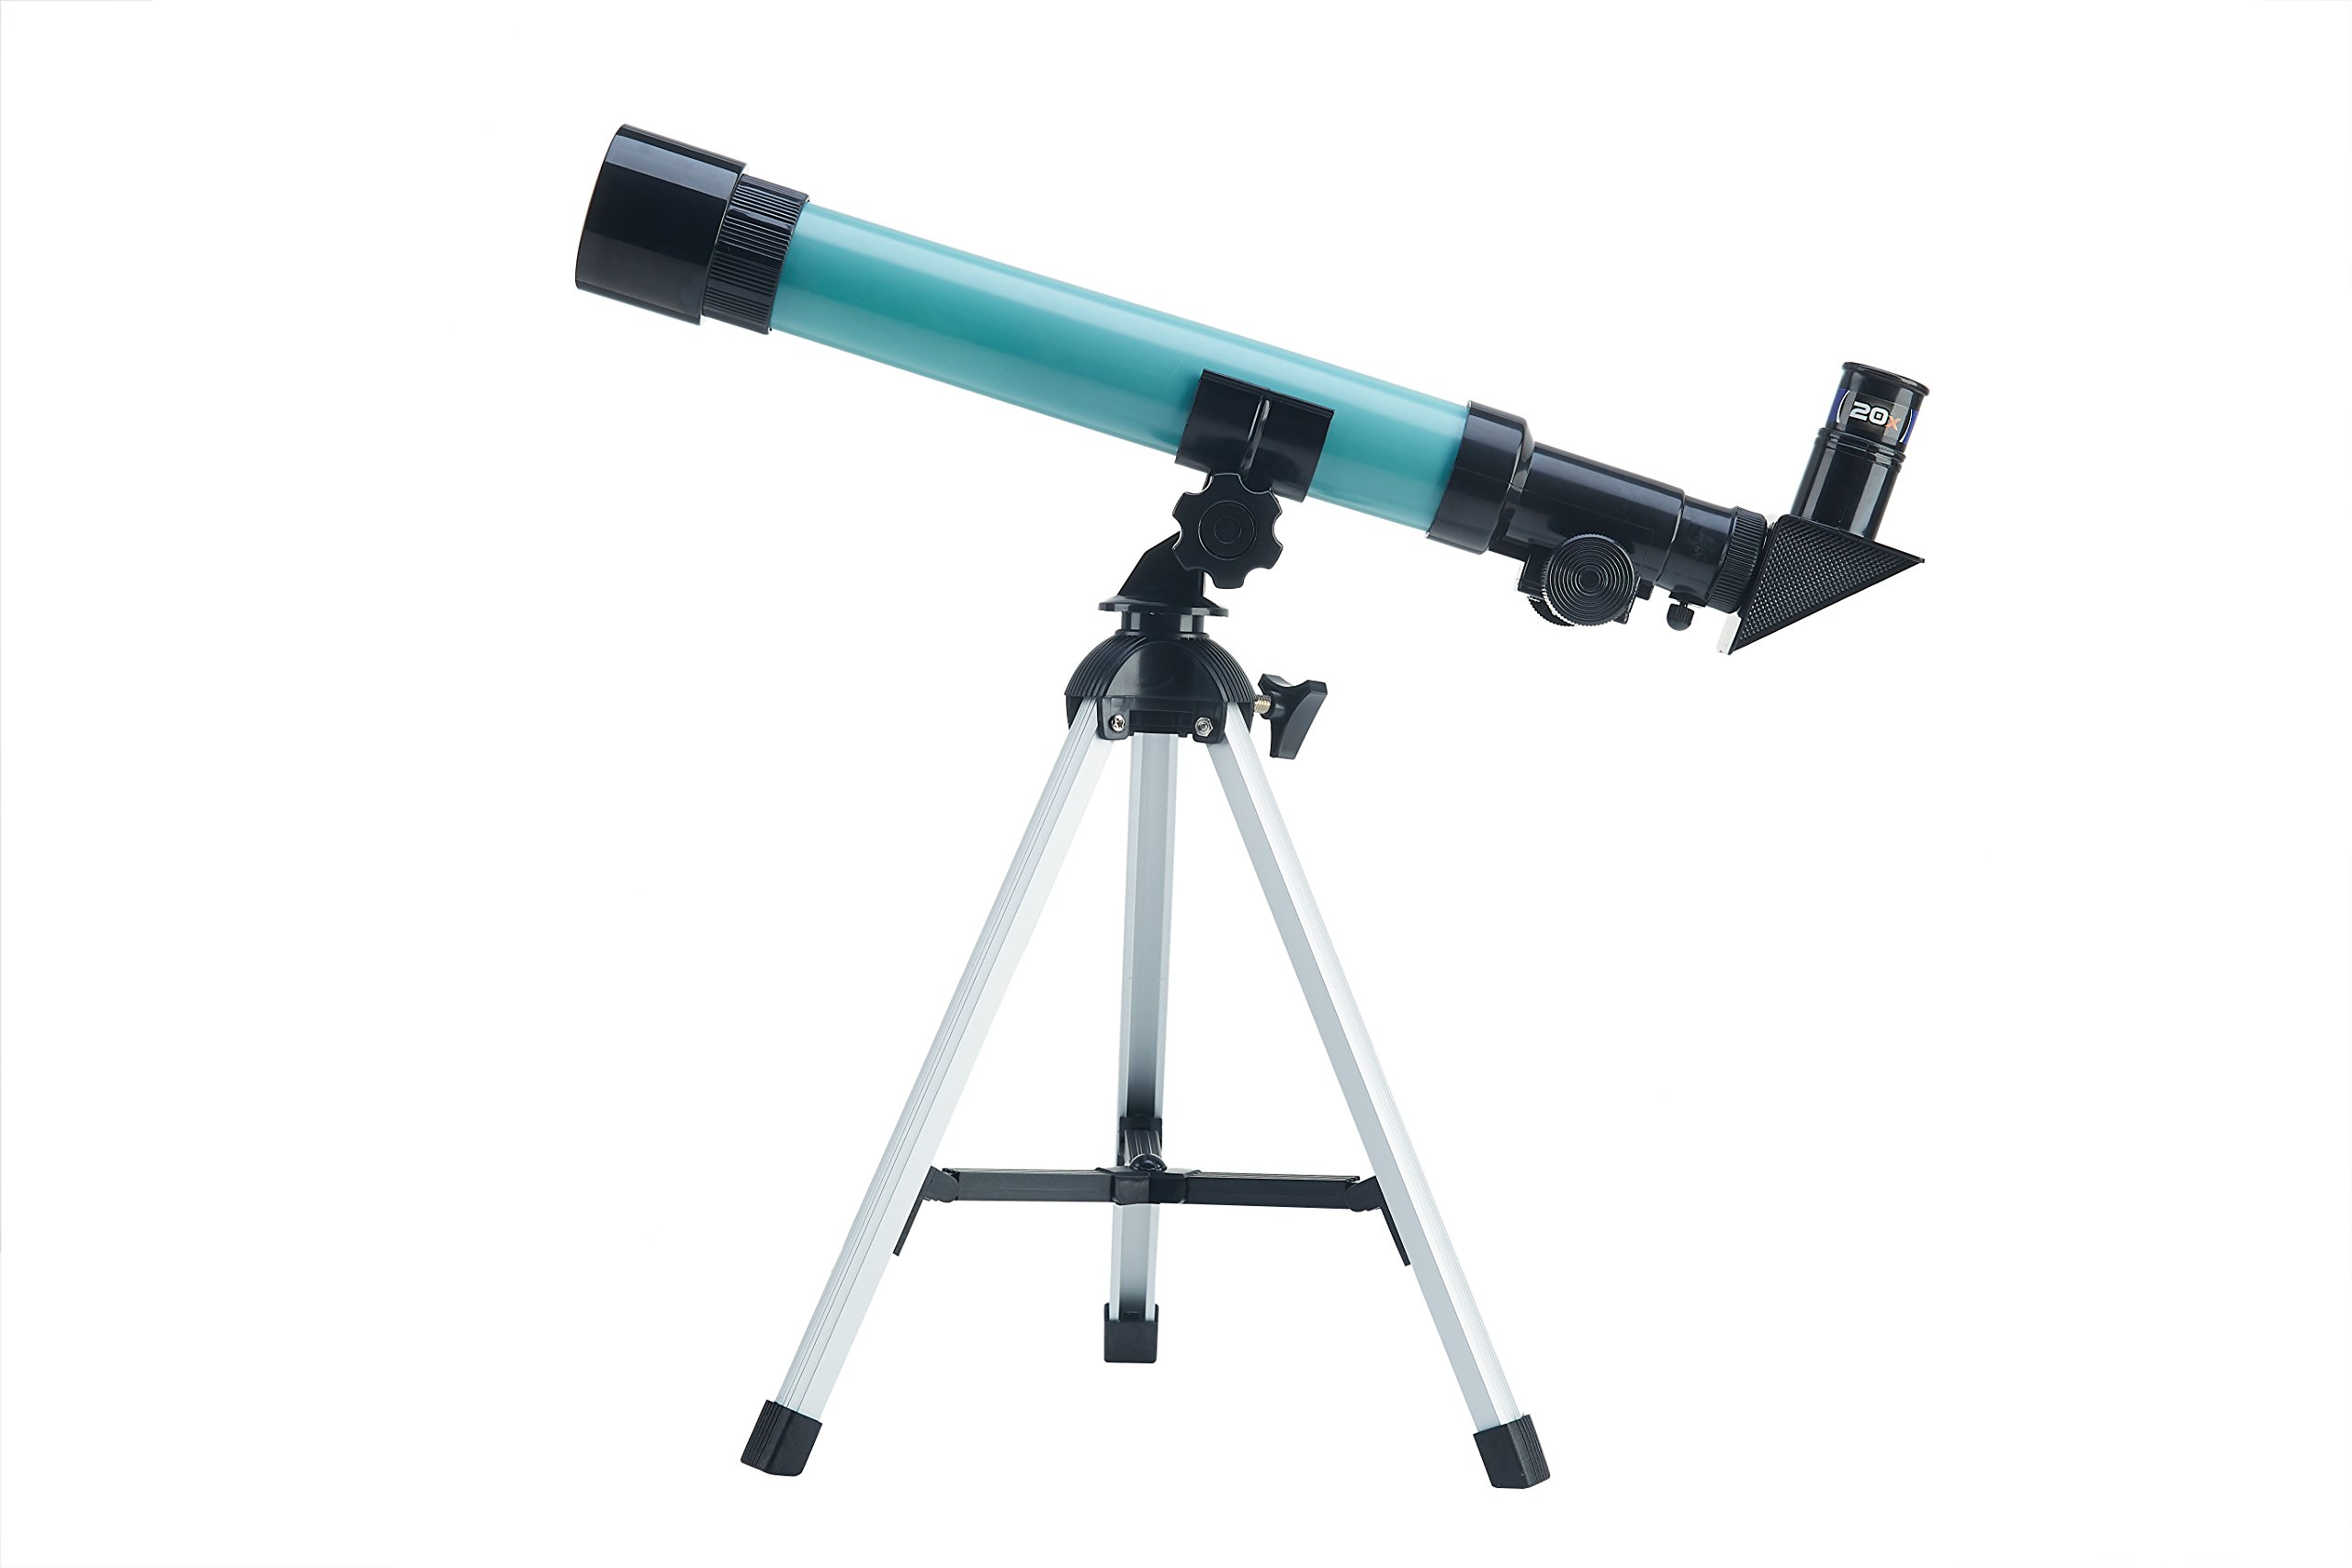 Telescope for kids, Chilren's Educational Refraction Type Scientific Telescope, Plastic Toy Telescope for Beginners, 90 Magnification Eyepieces and Tripod Enjoy Steady Observation of Astronomy.